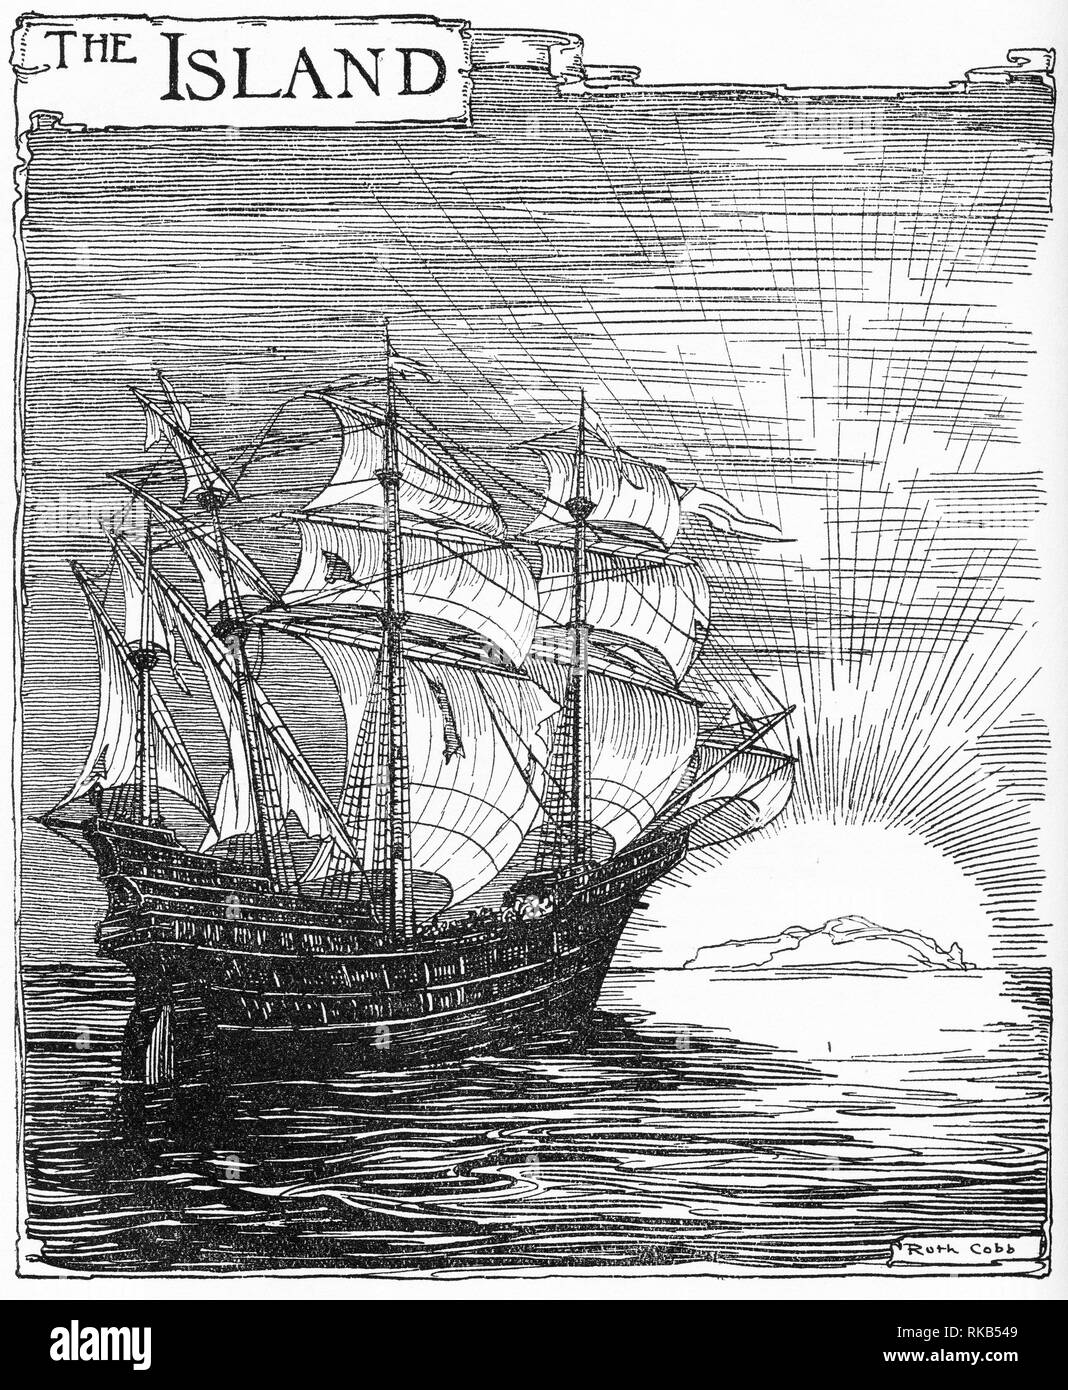 Engraving of a sailing ship heading to the setting sun. From Chatterbox magazine, 1925 - Stock Image